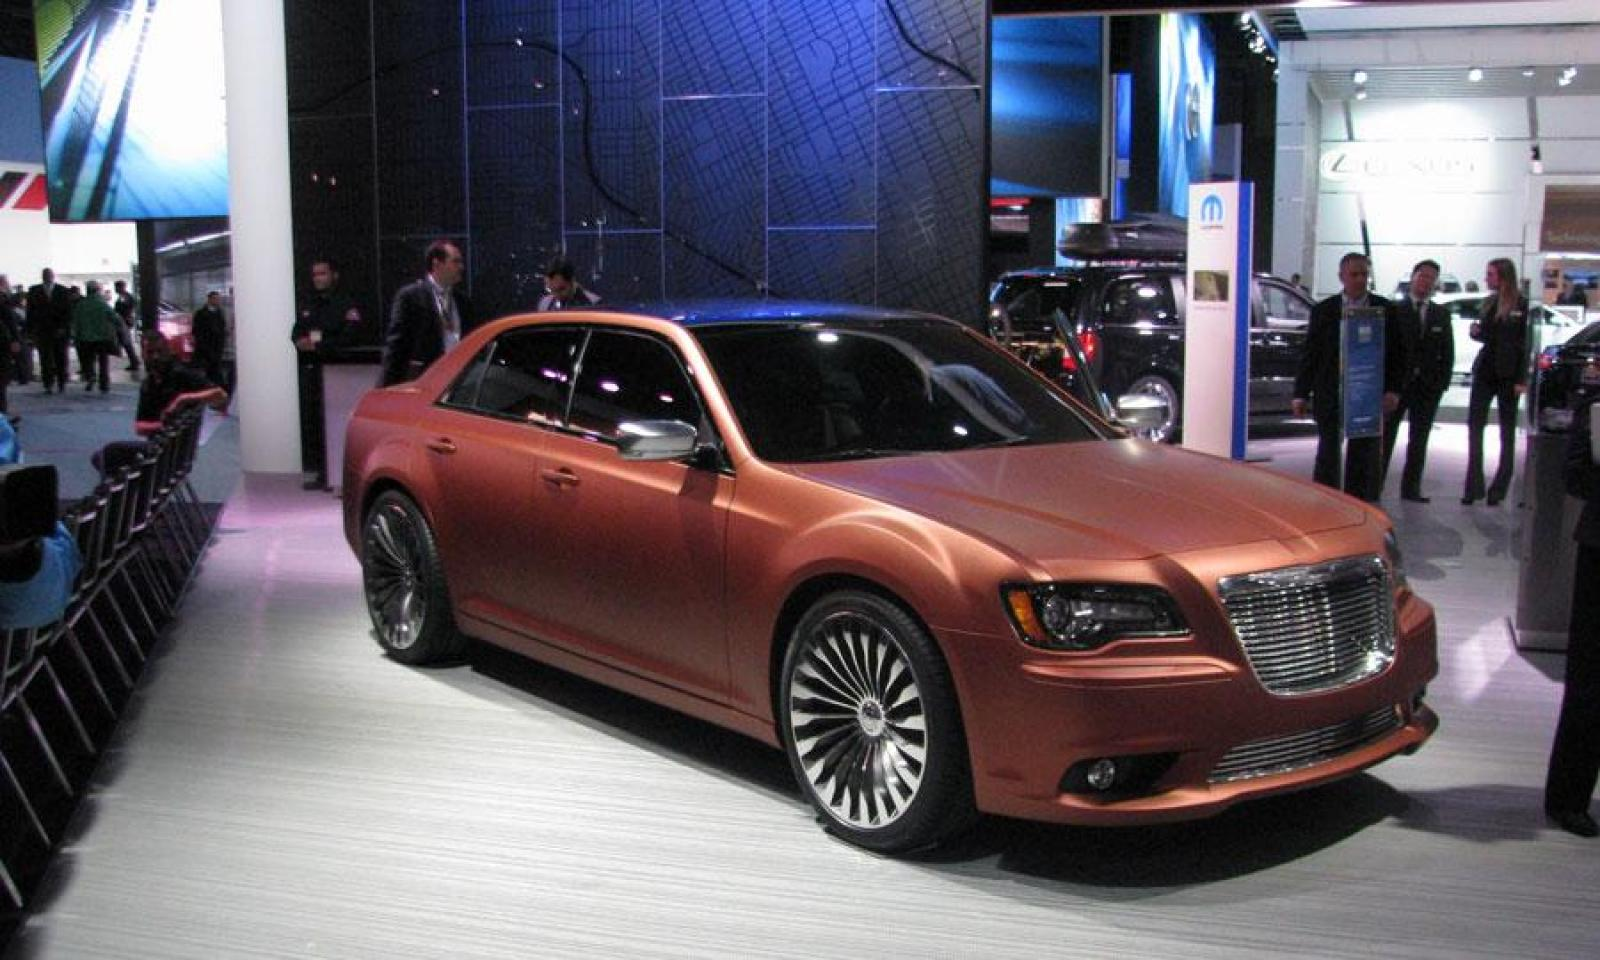 800 1024 1280 1600 origin 2015 chrysler 300